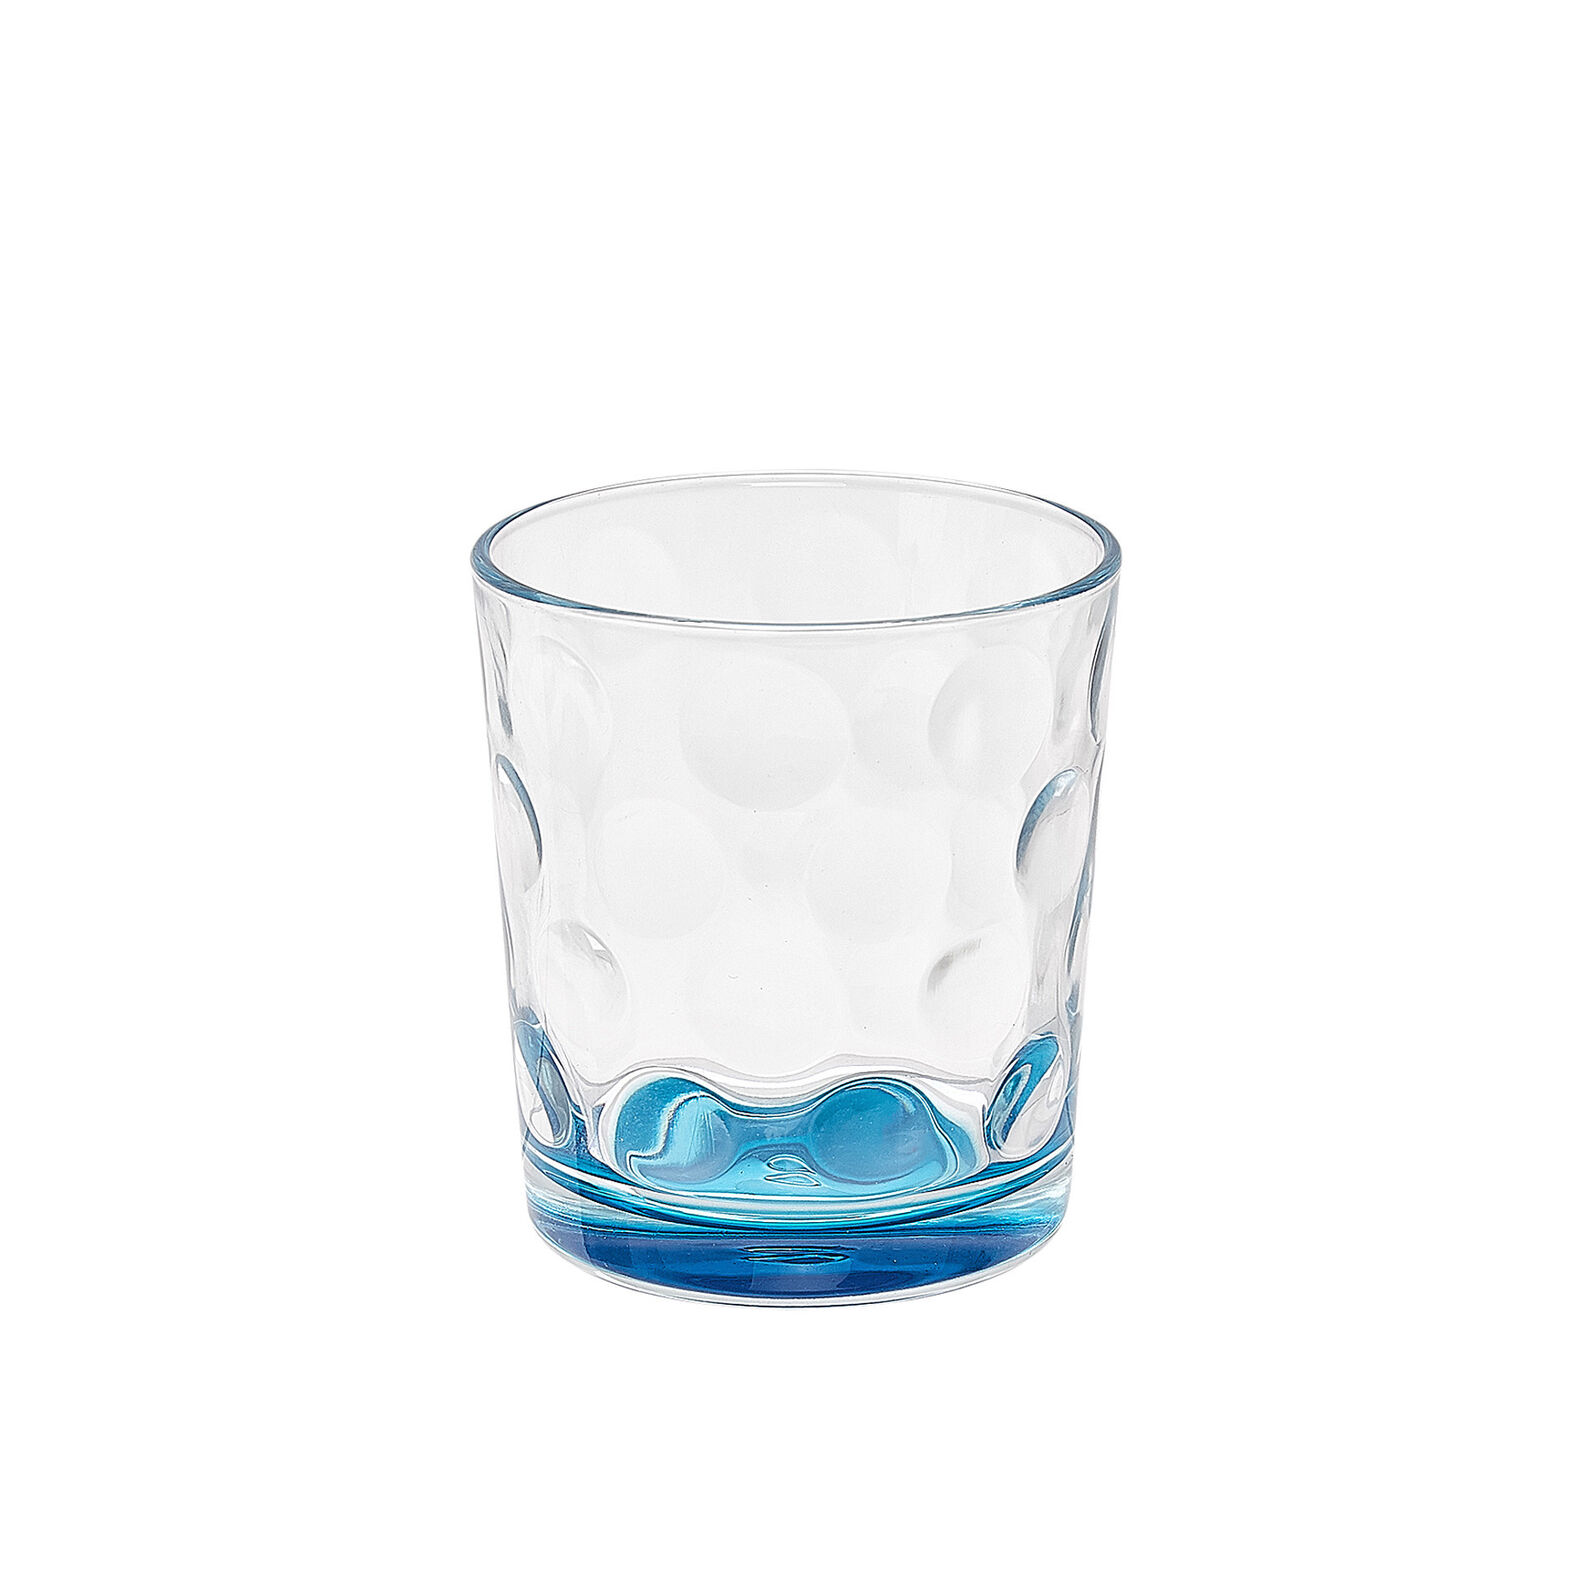 Set of 6 Space glass tumblers